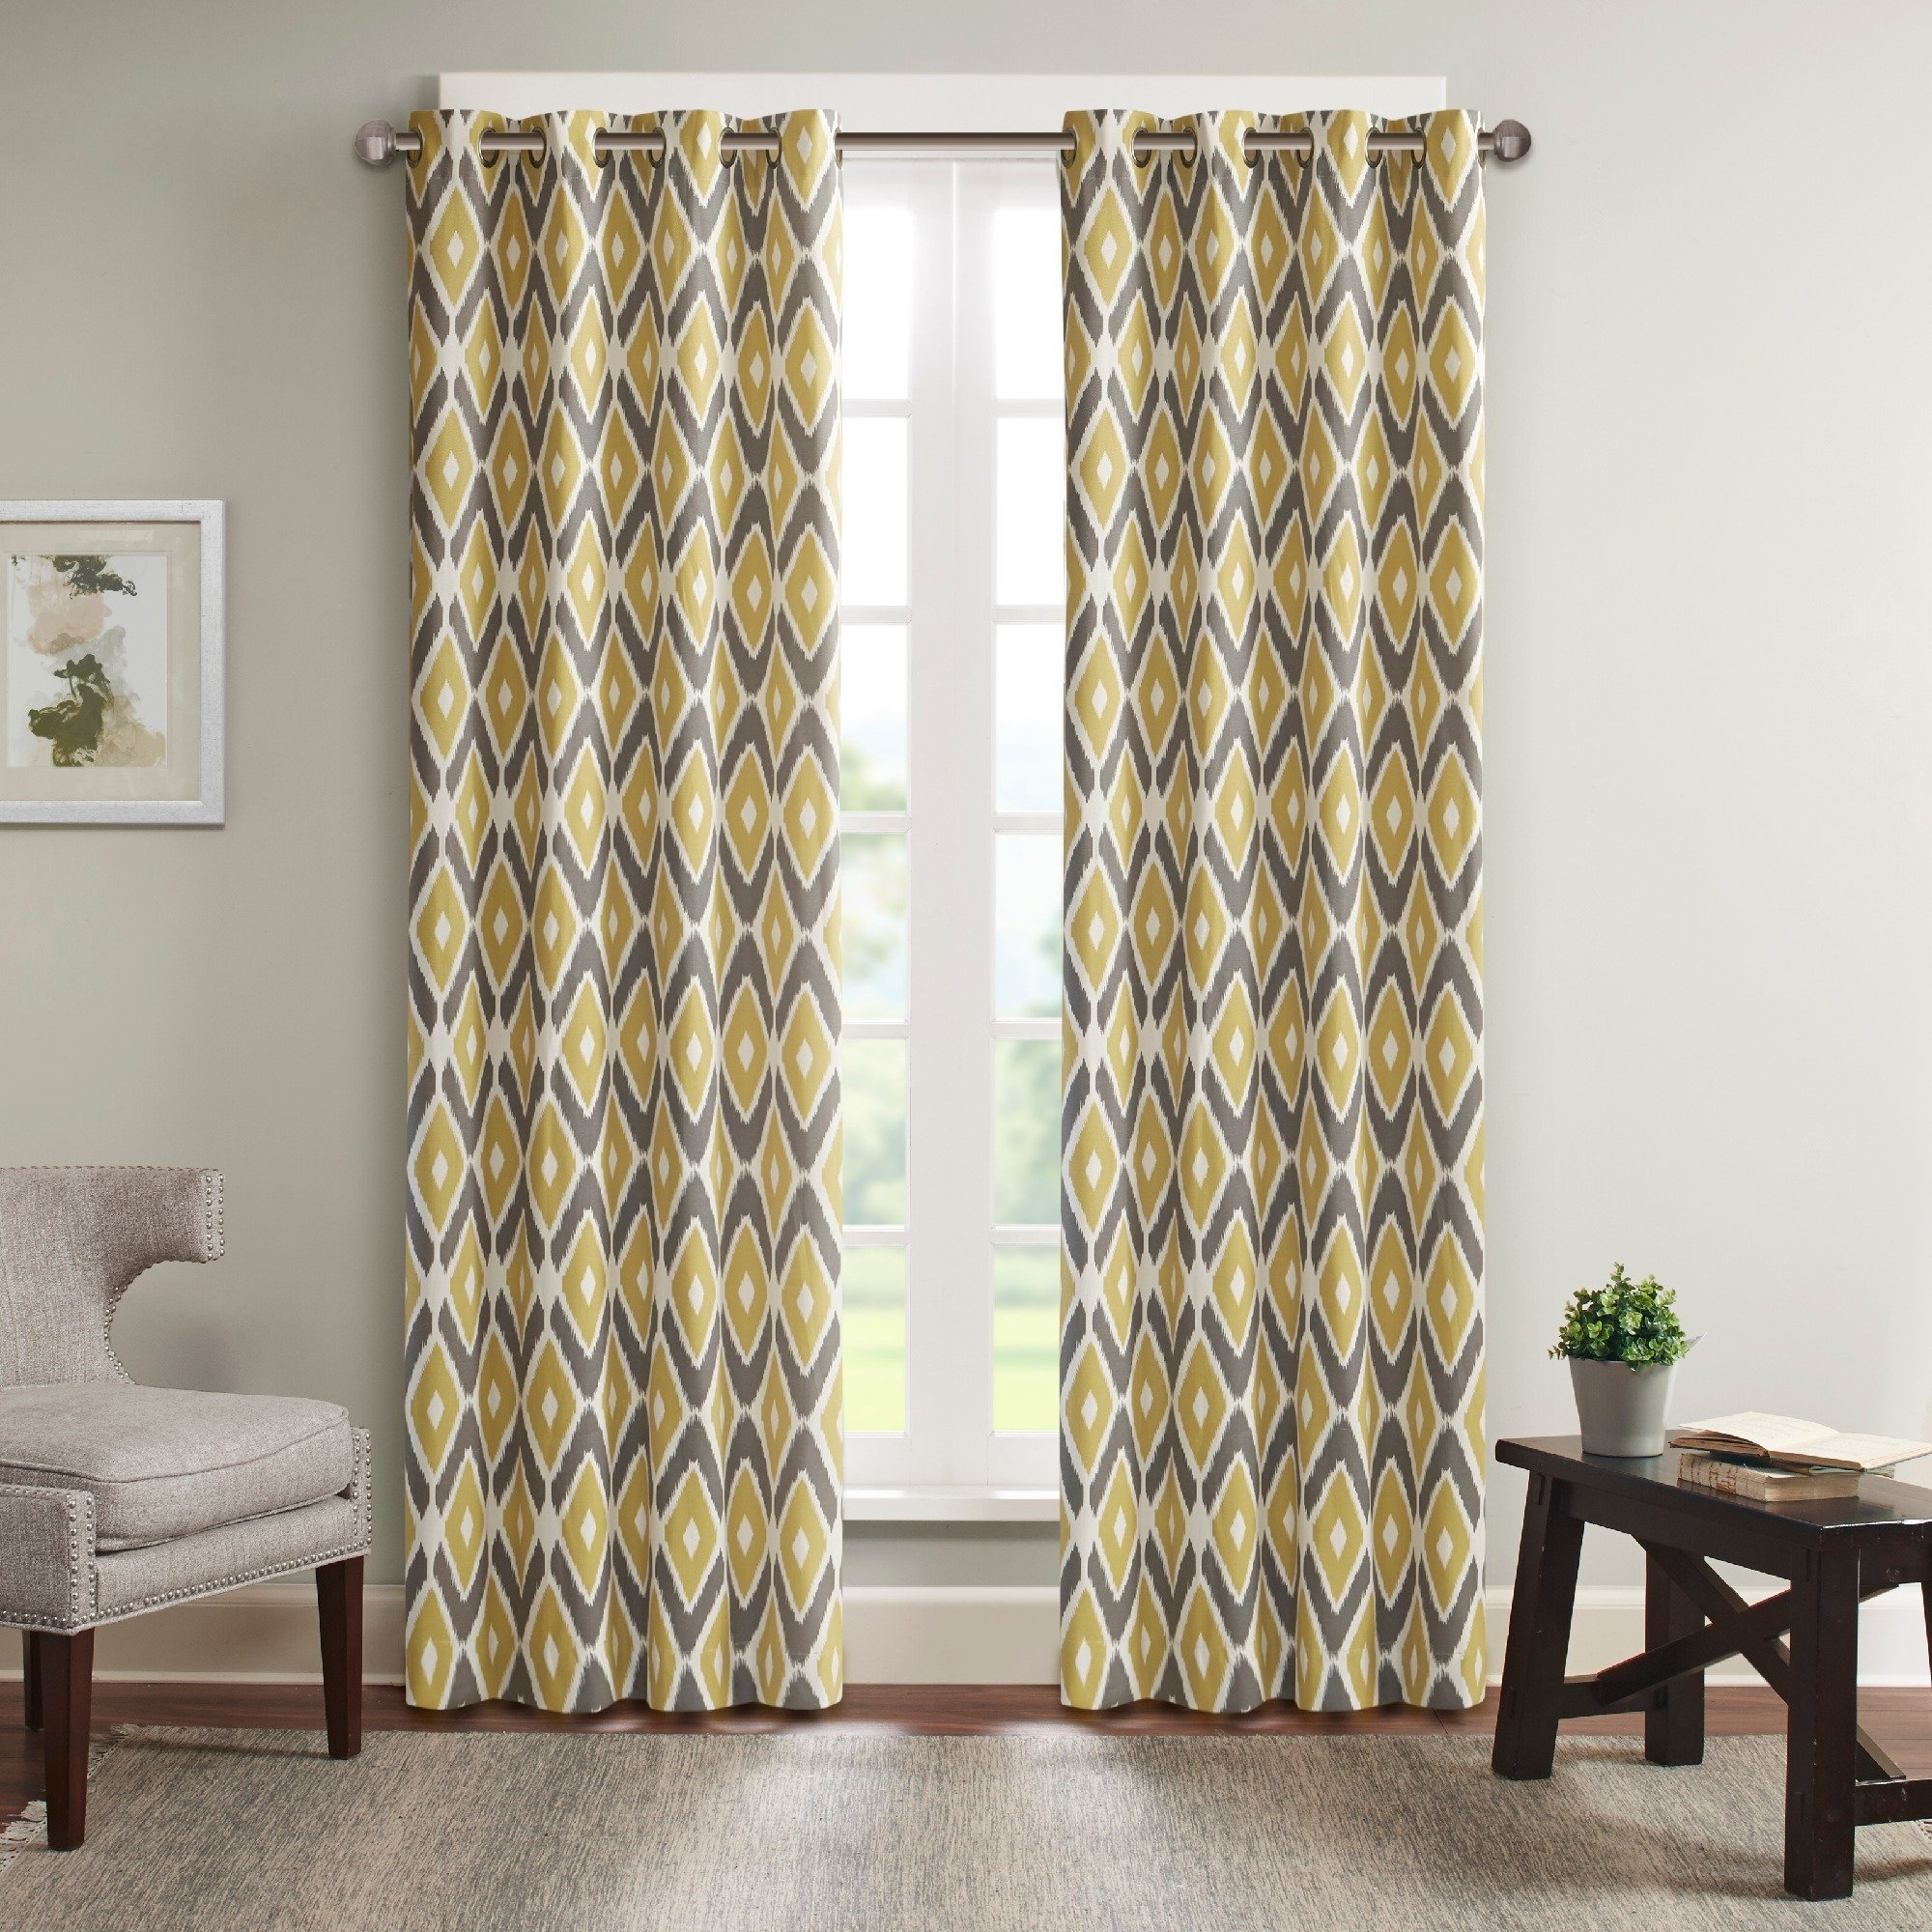 Madison Park Stetsen Diamond Printed Single Window Curtain Within Ink Ivy Ankara Cotton Printed Single Curtain Panels (View 16 of 20)